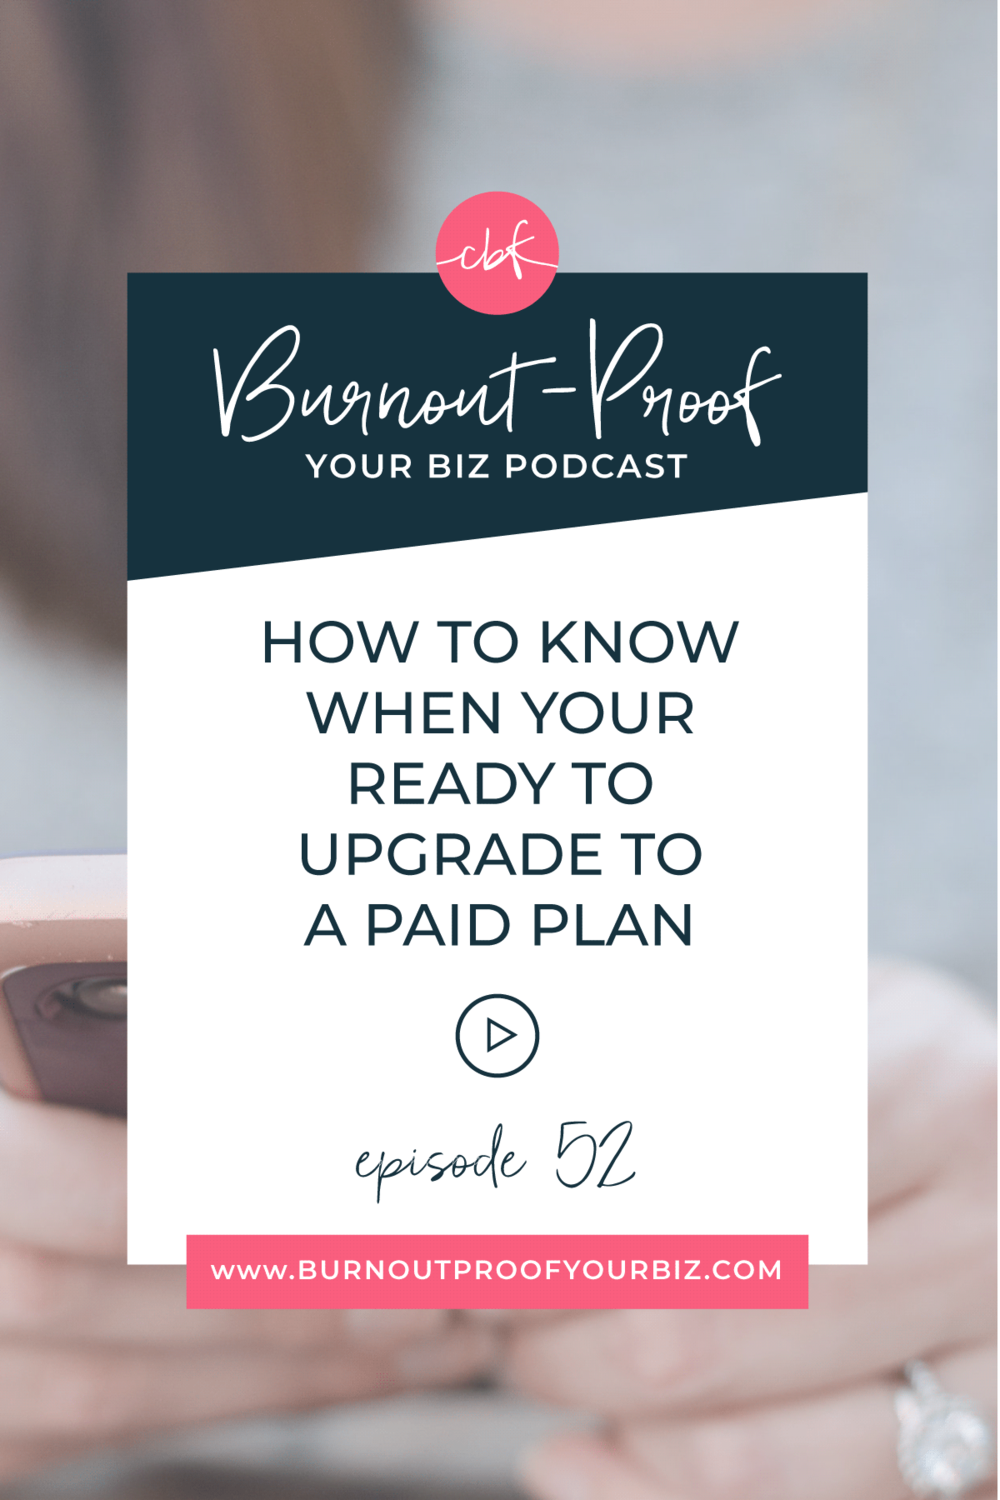 How to Know When You're Ready to Upgrade to a Paid Plan | Burnout-Proof Your Biz Podcast with Chelsea B Foster | Episode 052 - How to Know When to Invest In a Tool for Your Business | Learn how to run your biz and live your dream life on your own terms without the fear of burnout.  Business Coach | Workflow & Productivity Specialist | Free vs. Paid Apps for Your Business | Free Trials + When to Upgrade | Investing in Your Business | Growth Strategy | Overwhelmed | Stressed-out | Journaling Activity | Creative Entrepreneur | Creative Influencer | Productivity | Dream life | Freedom Lifestyle | Having a business that supports your dream life |